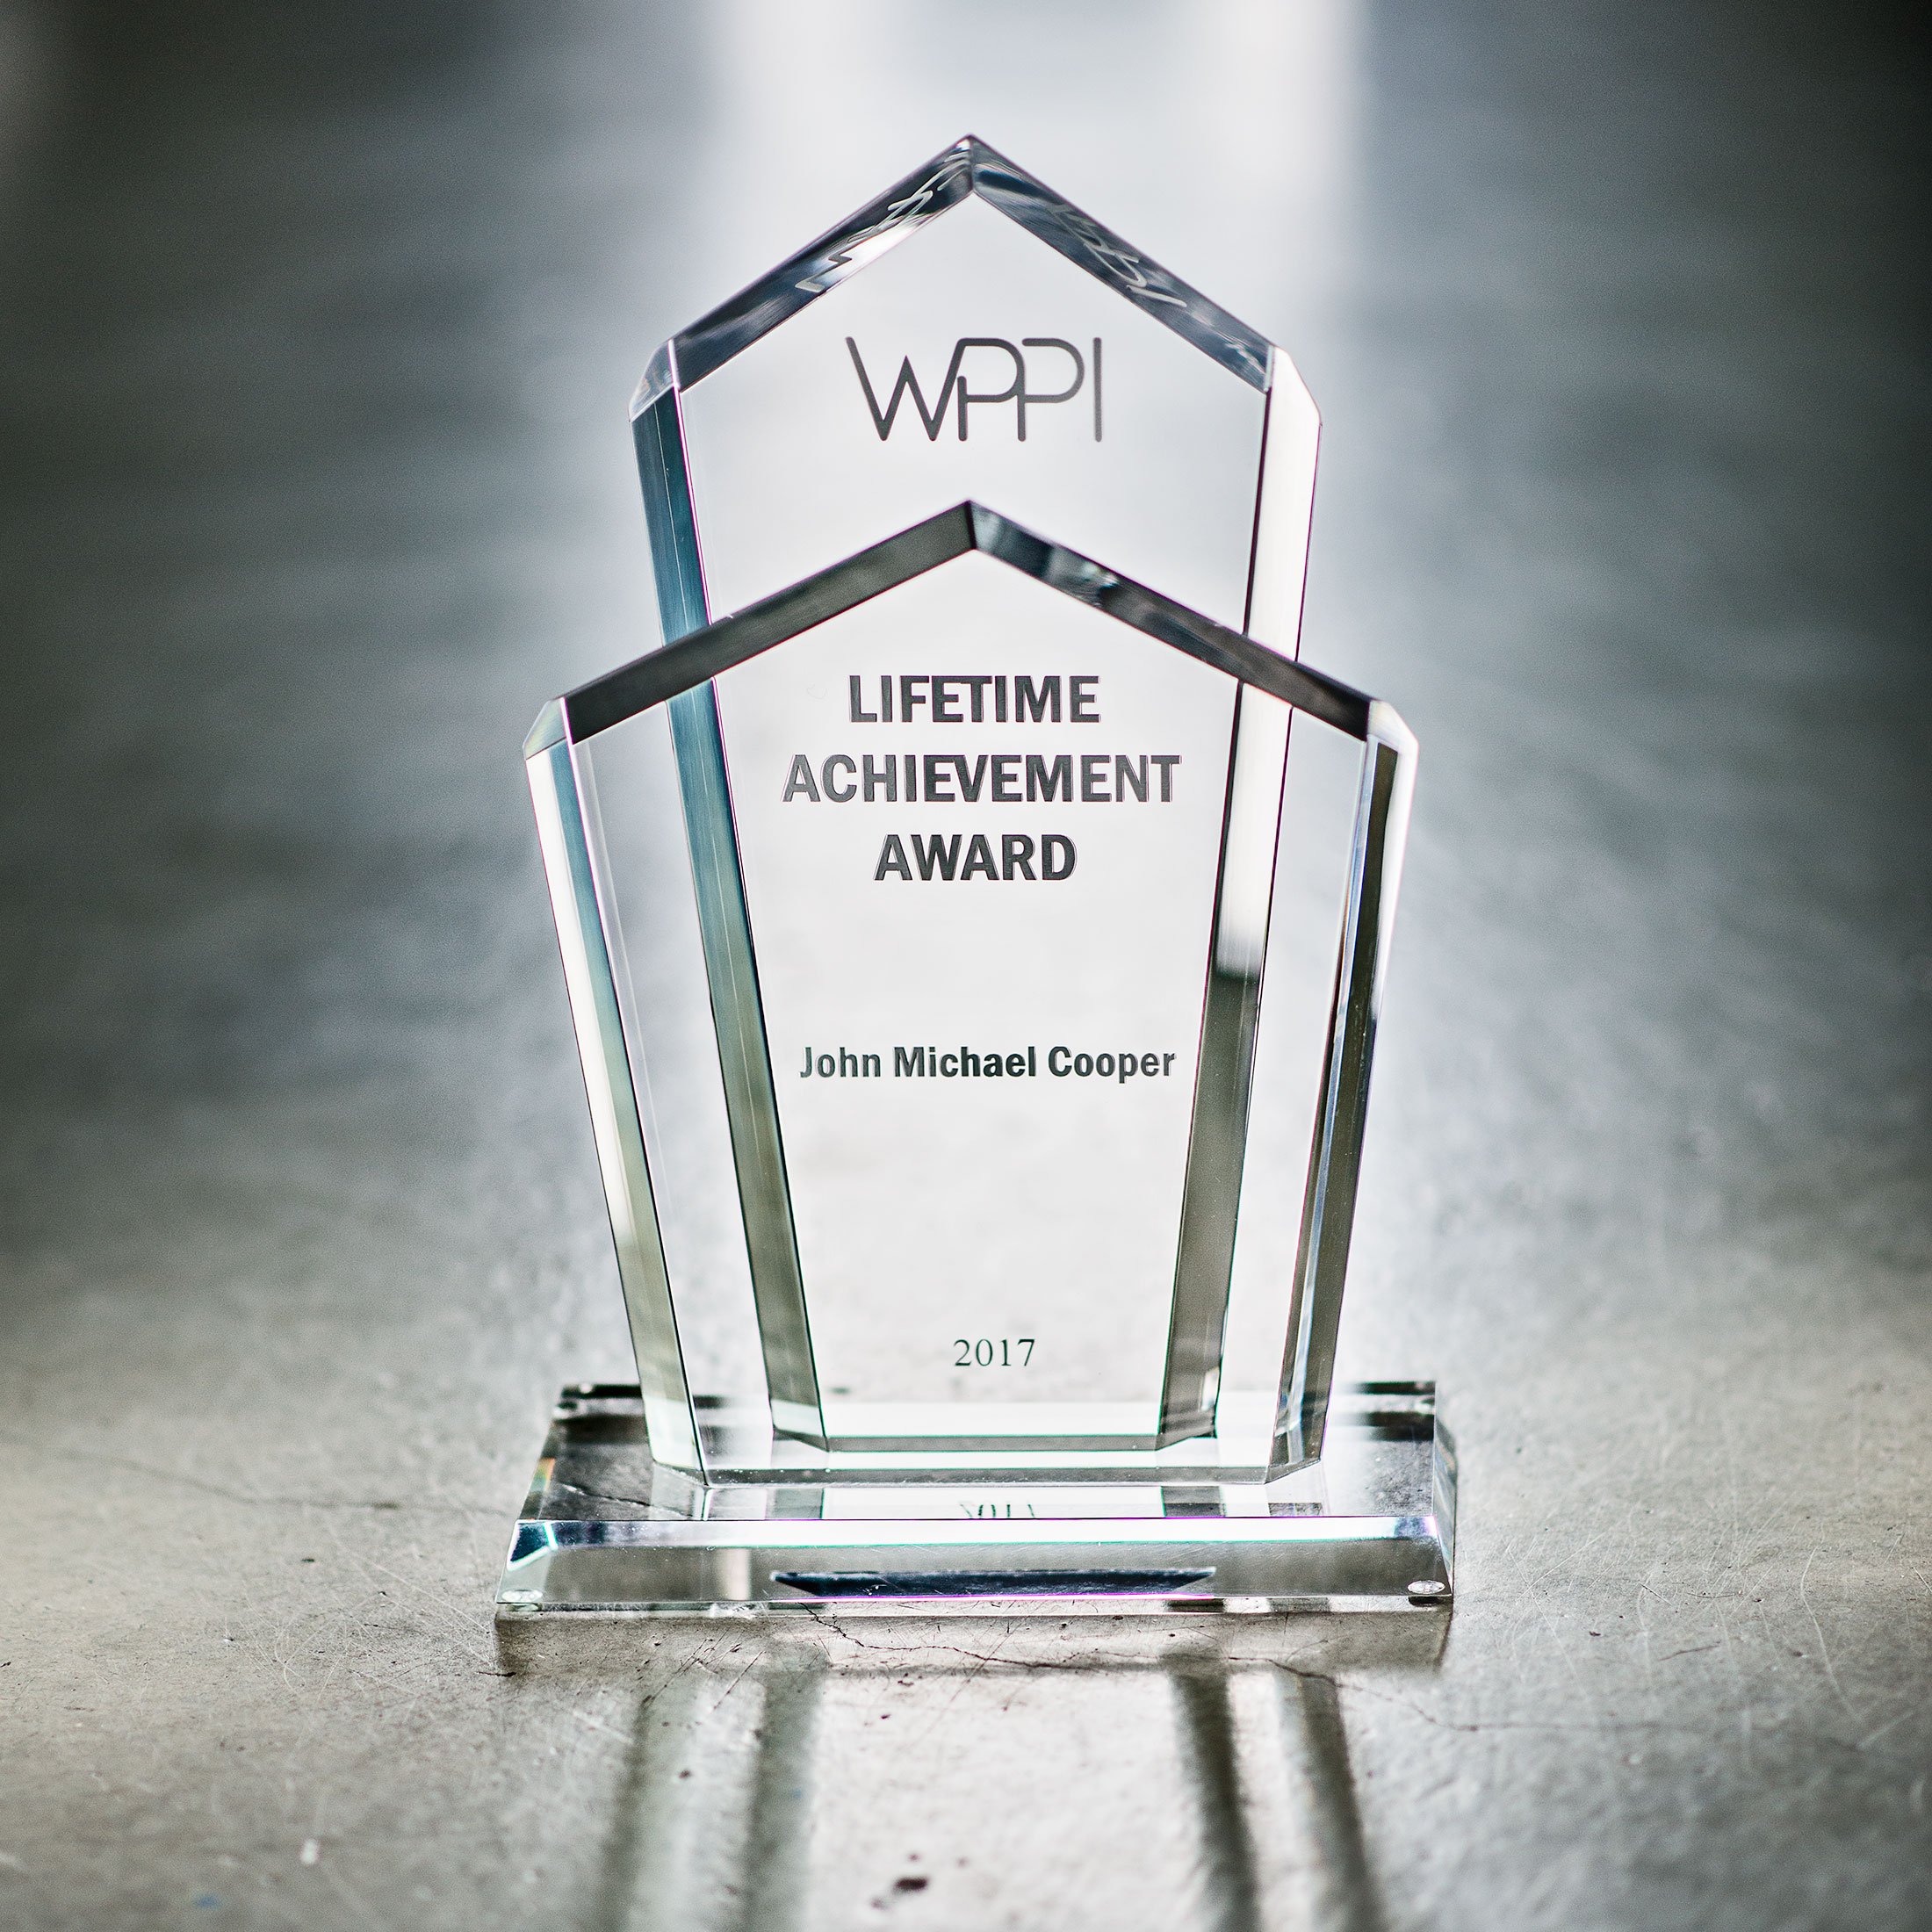 WPPI Lifetime Achievement Award